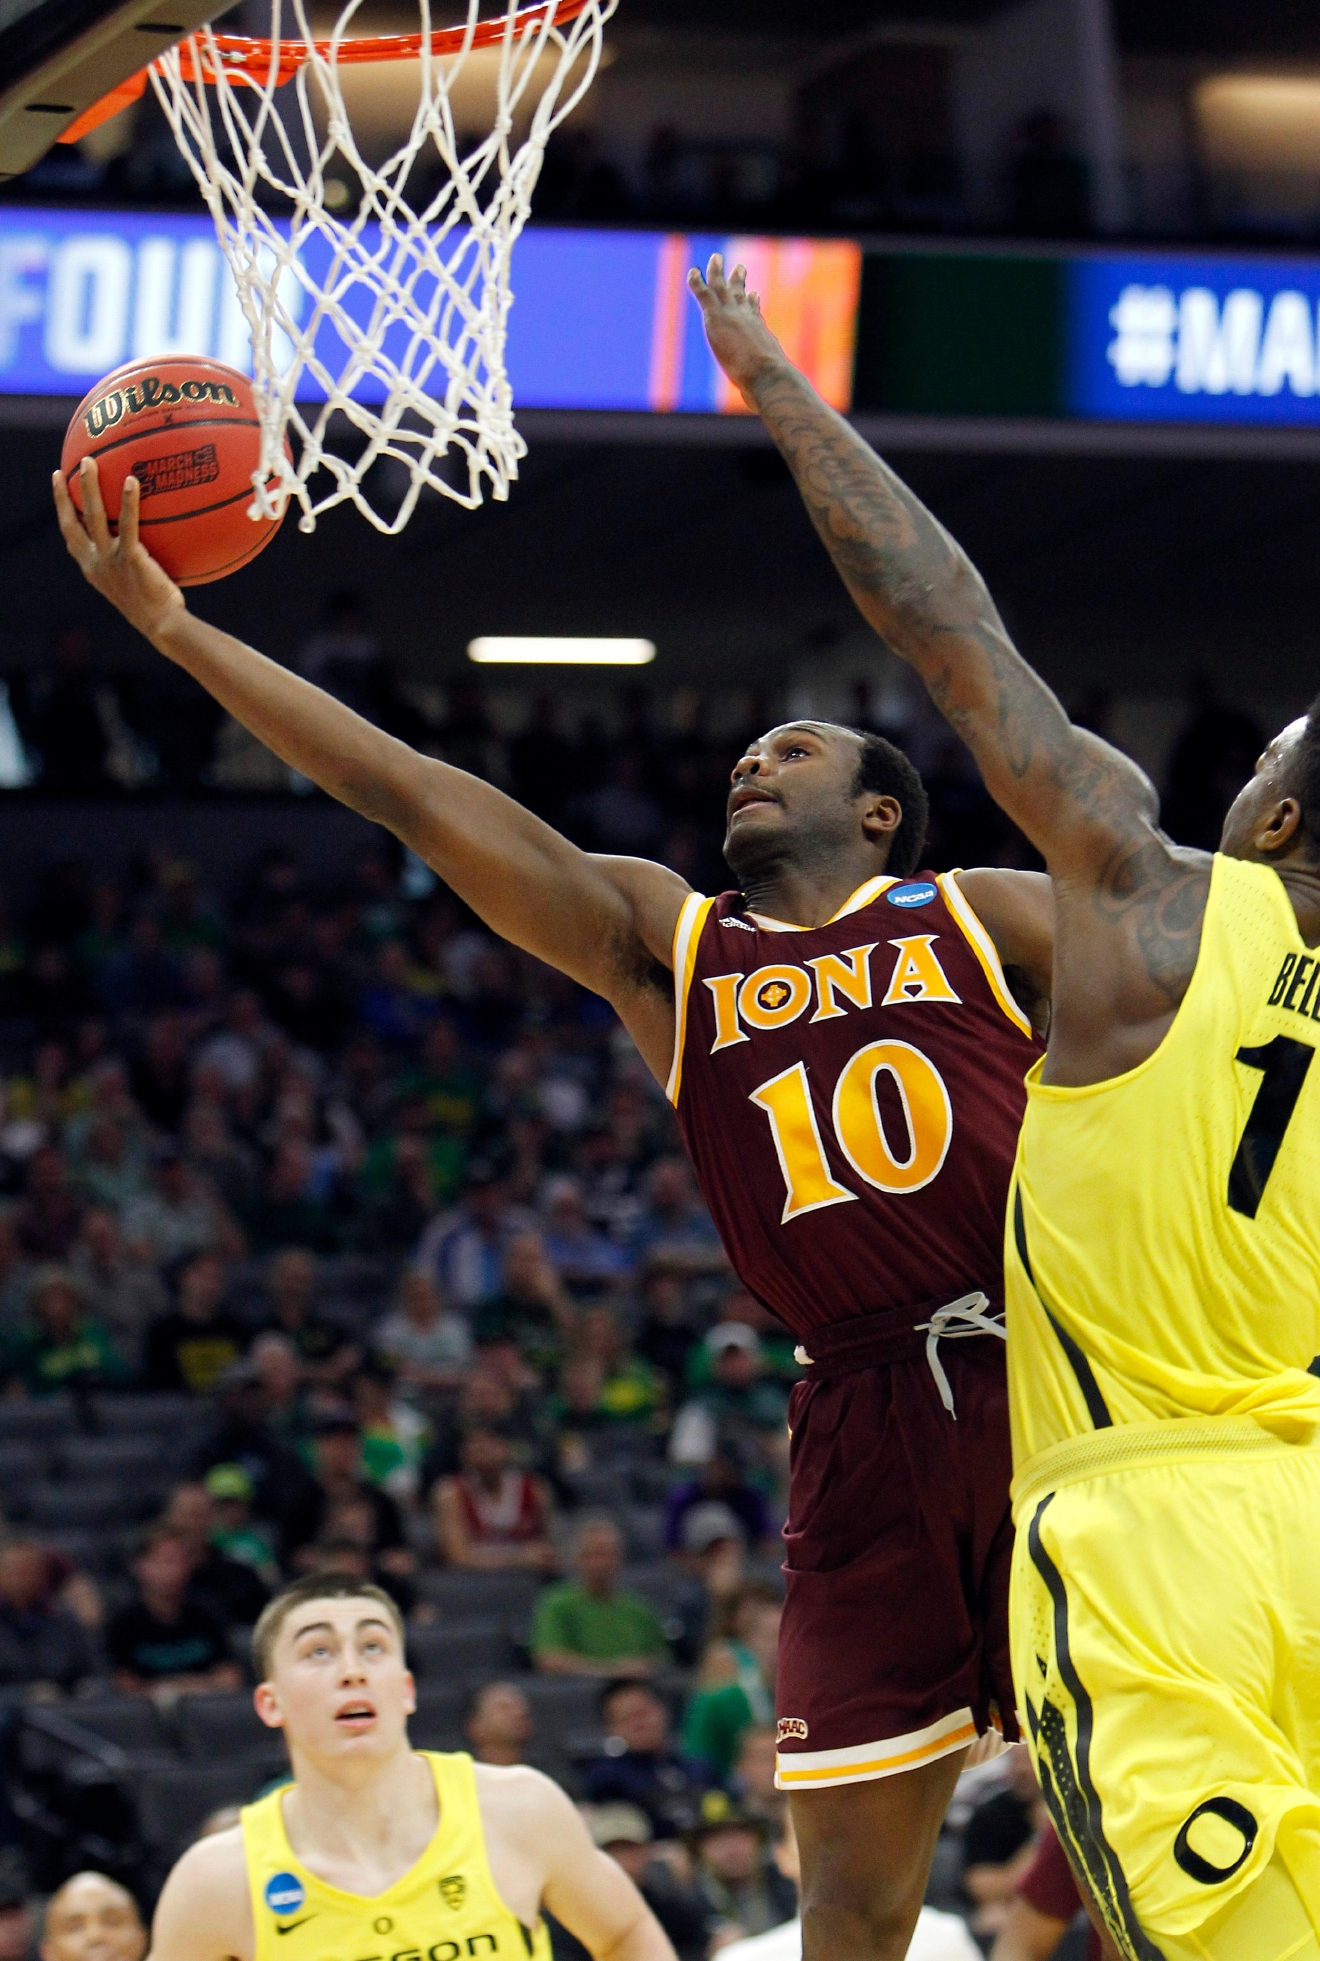 Iona guard Jon Severe, left, goes to the basket against Oregon forward Jordan Bell, right, during the first half of a first-round game in the men's NCAA college basketball tournament in Sacramento, Calif., Friday, March 17, 2017. (AP Photo/Steve Yeater)